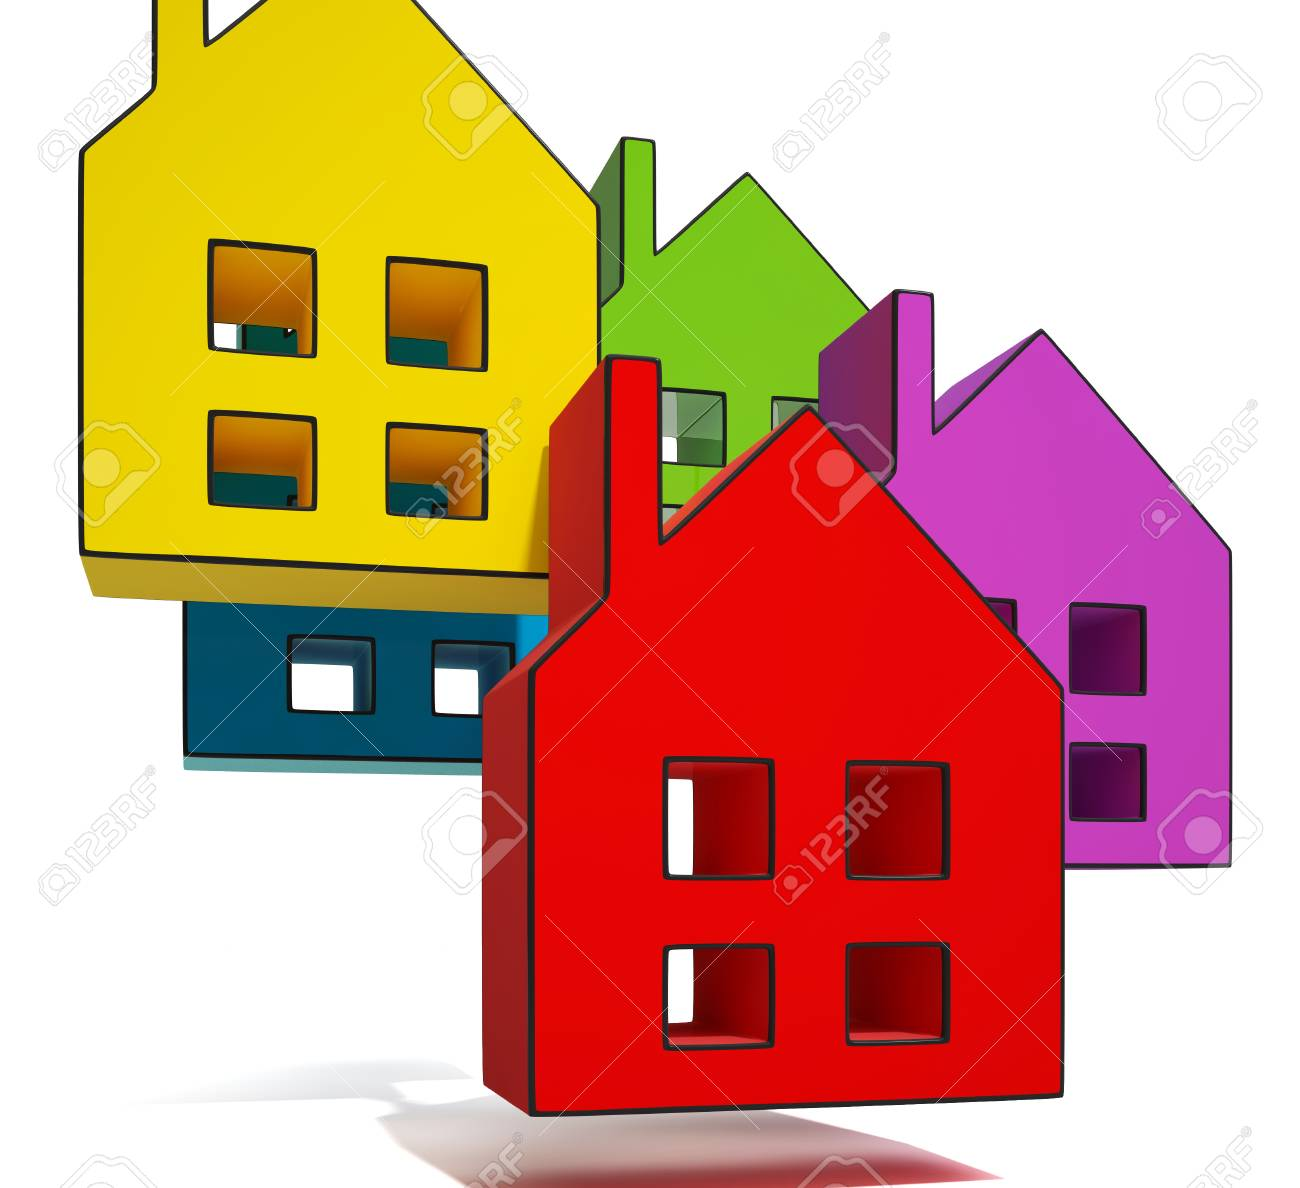 House Symbols Showing Houses Or Homes For Sale Stock Photo - 22675518